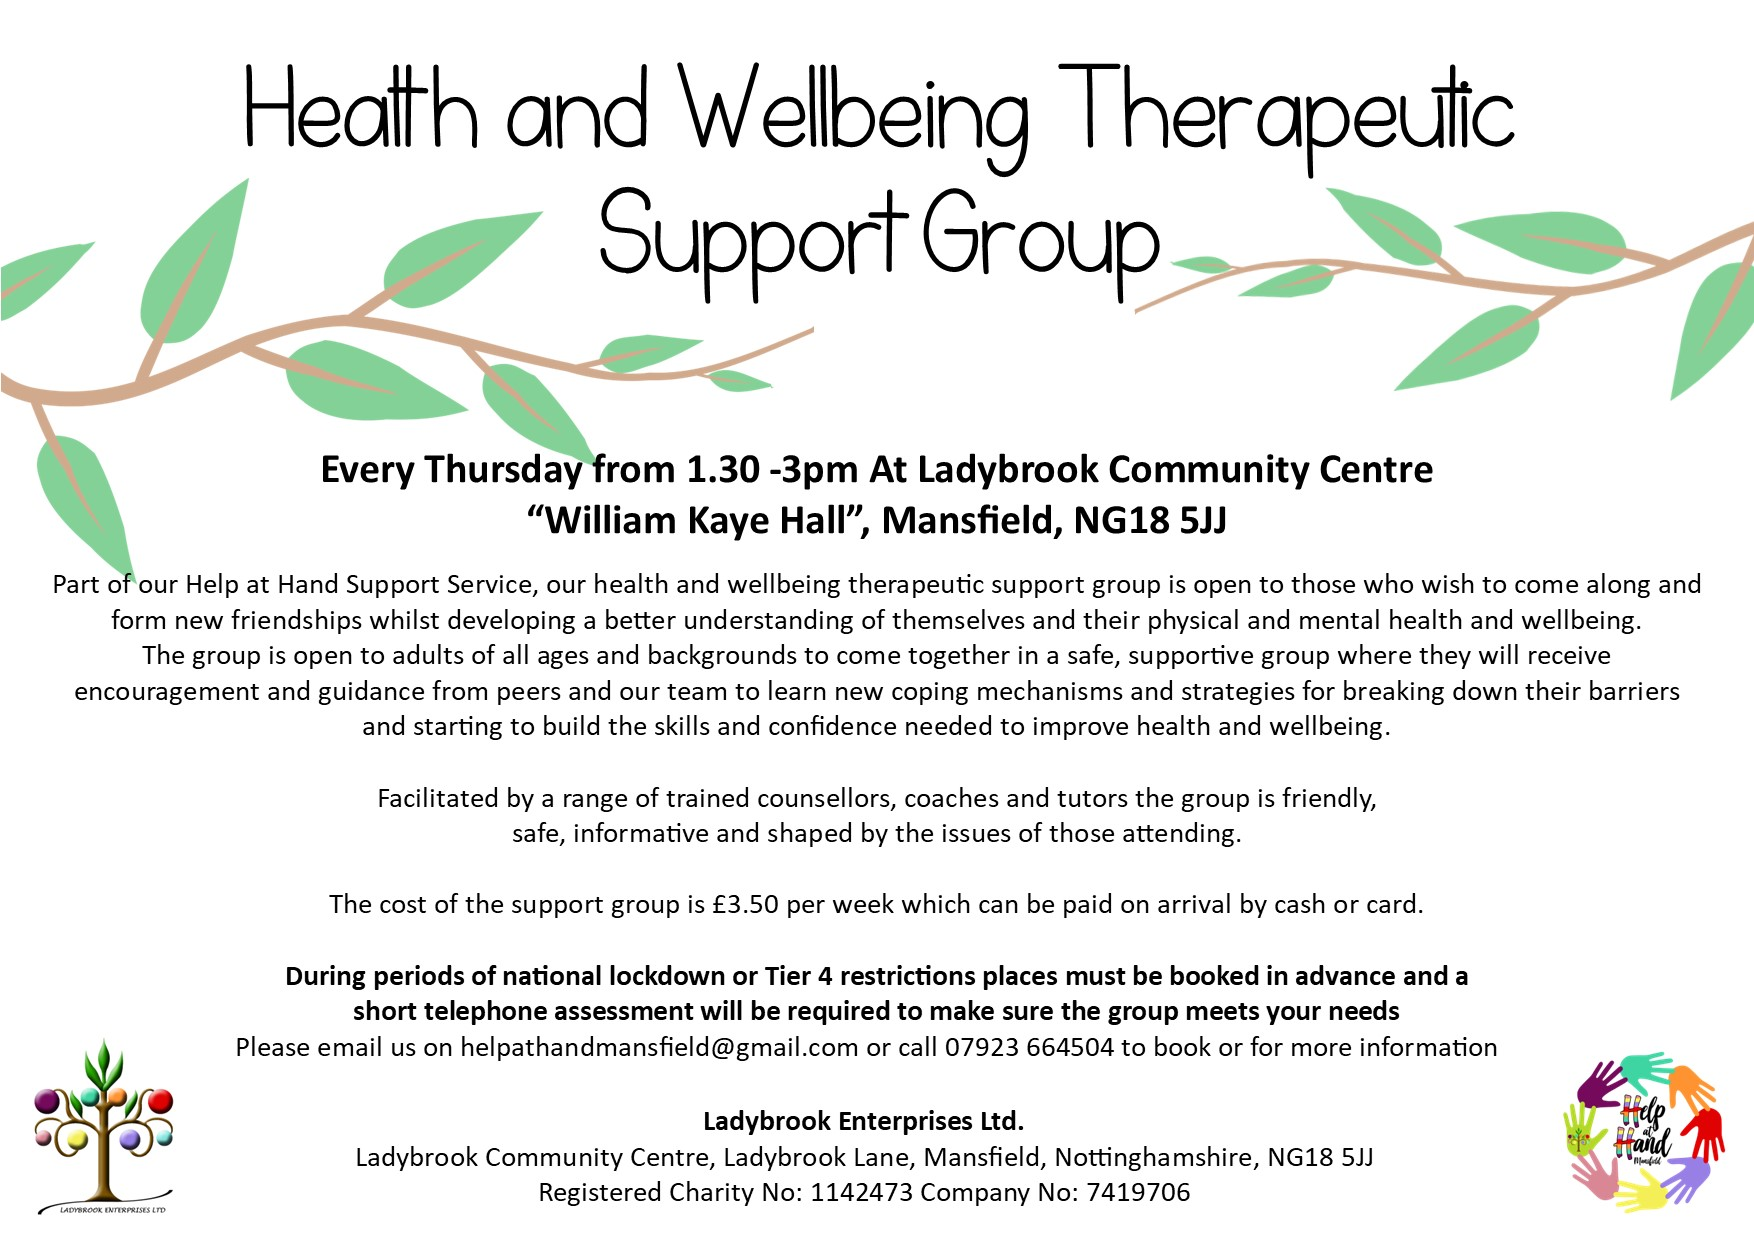 health and wellbeing therapeutic support